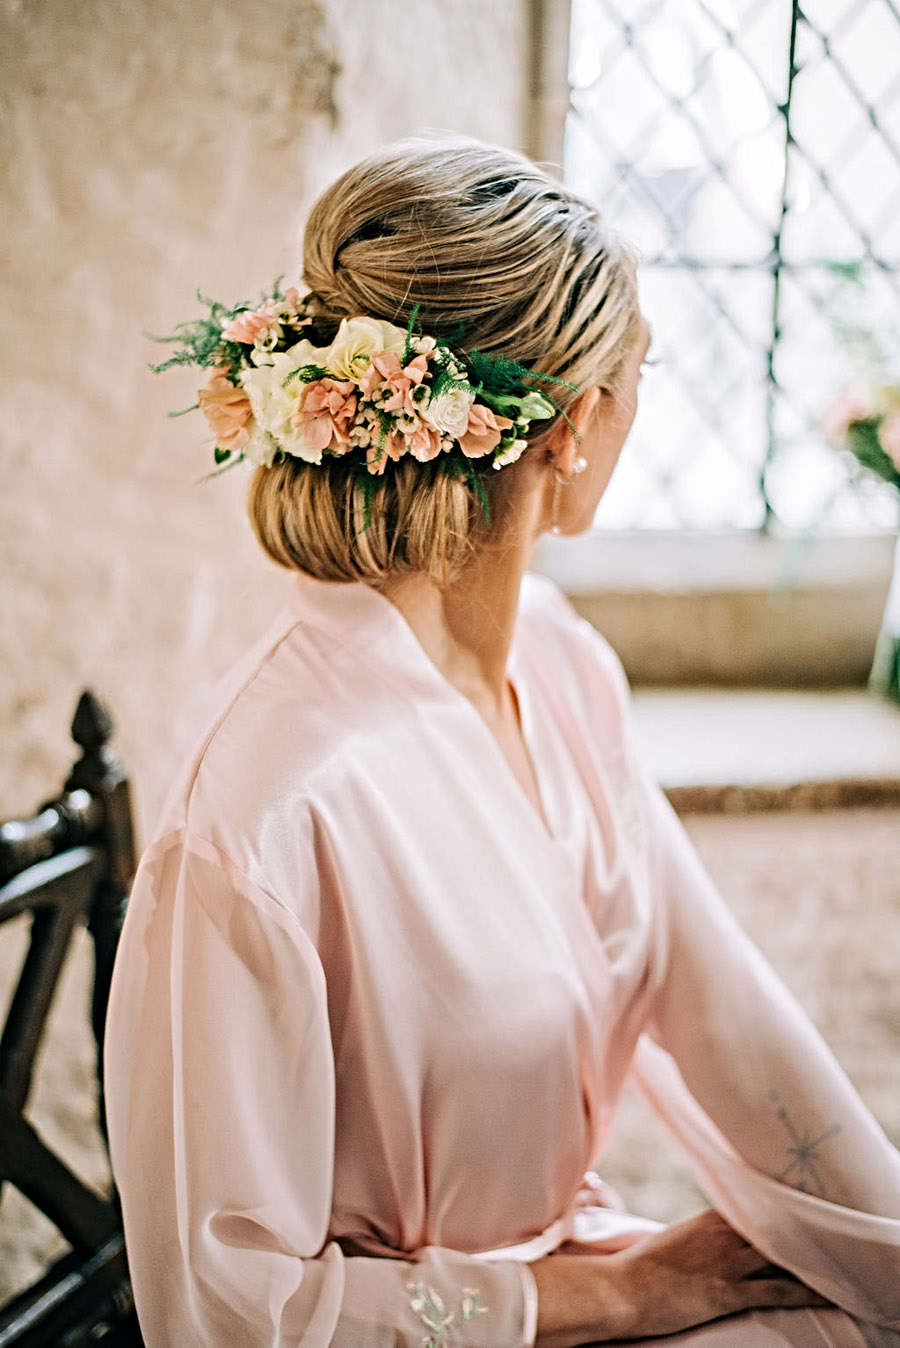 coral and neutral colour palette for a stunning wedding look with Corky and Prince, image credit Rachel Jane Photography (22)